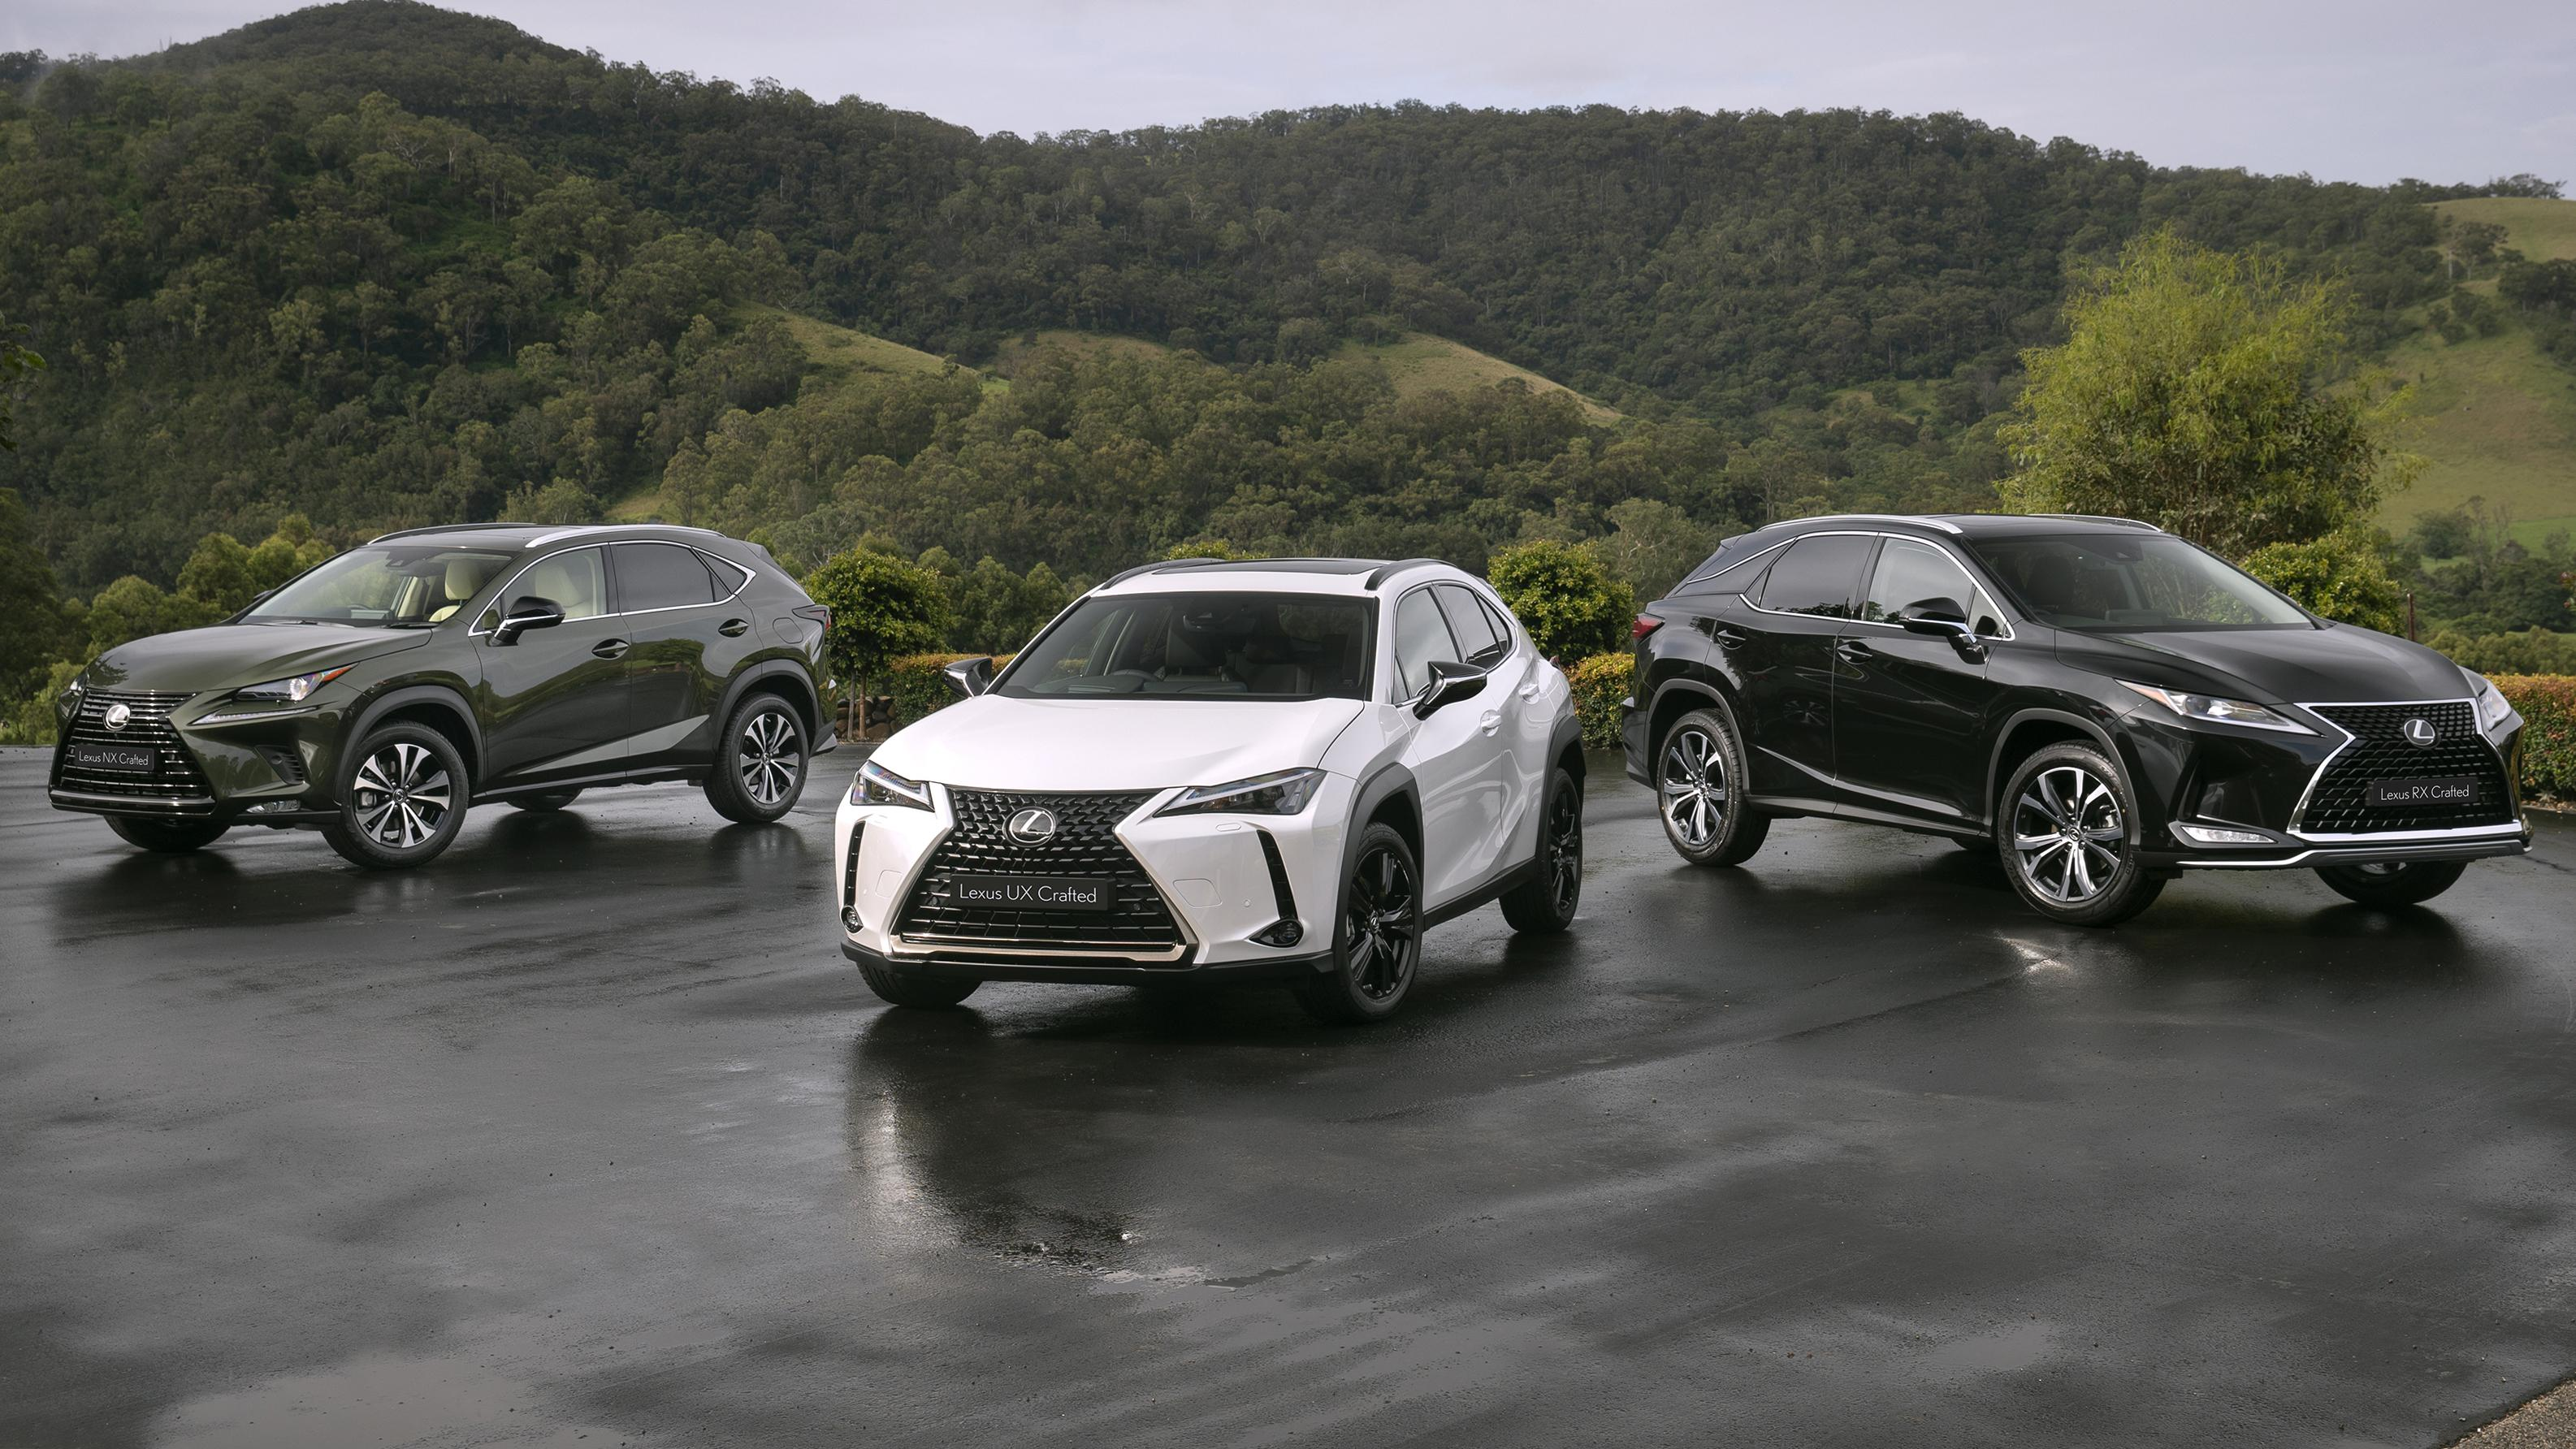 Lexus UX, NX and RX Crafted Edition prices